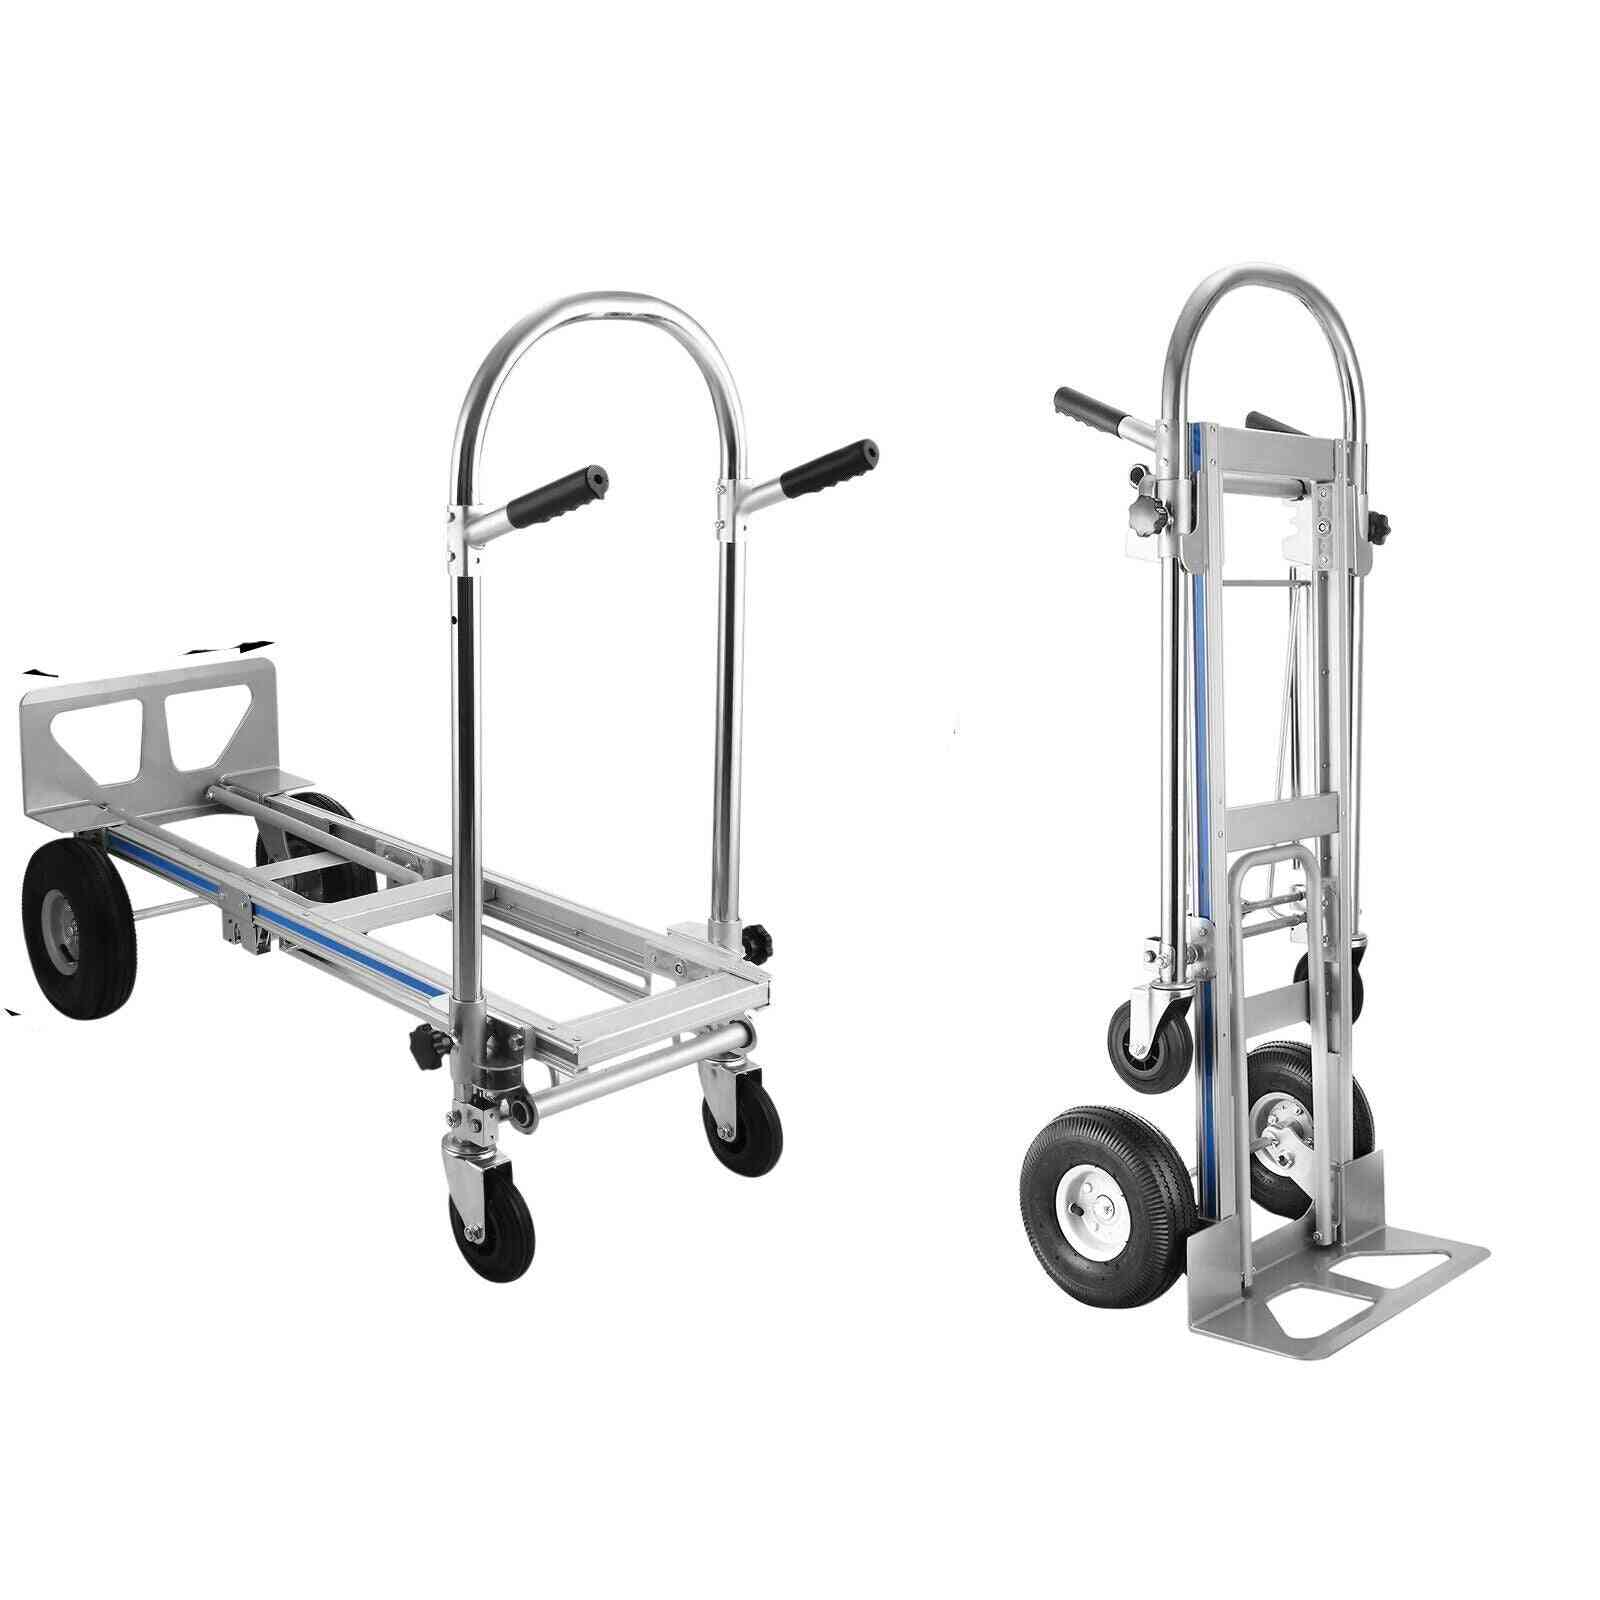 3-in-1 Aluminum Hand Truck Foldable Dolly Cart 1000 Lb Capacity New Converts Regular Dolly Stair Climber